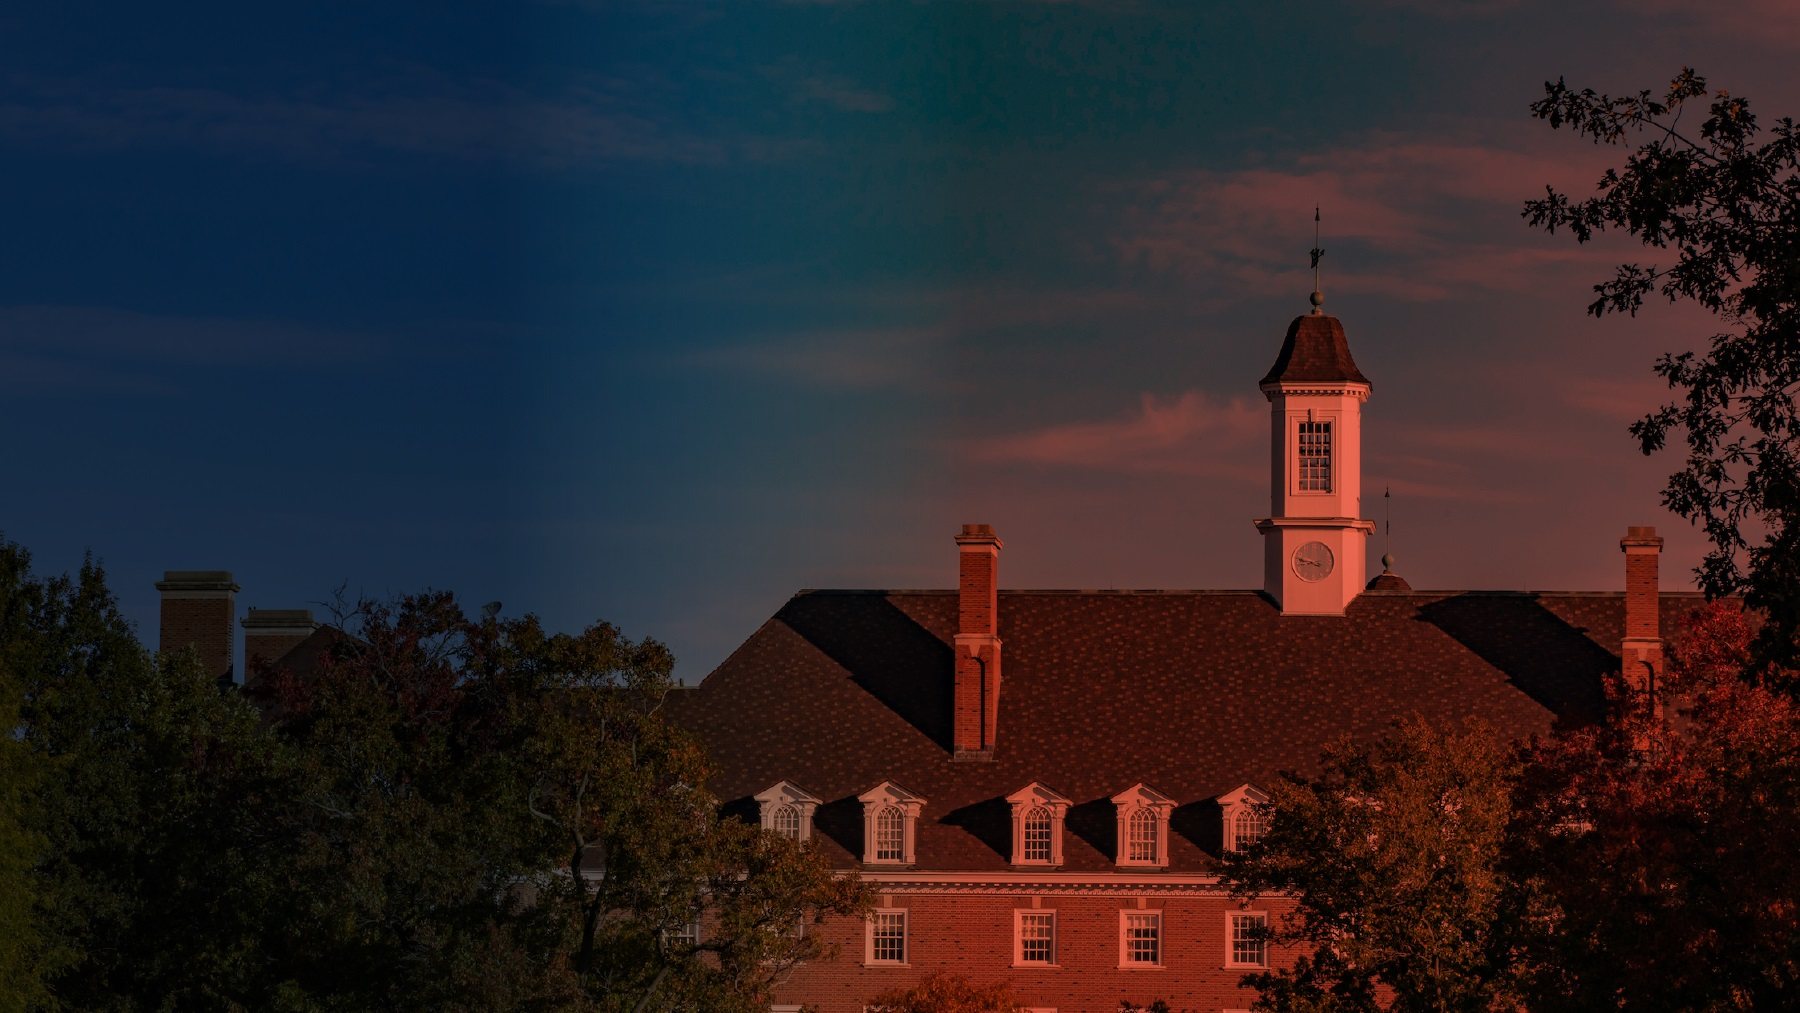 skyline view of the Illini Union with blue and orange filters